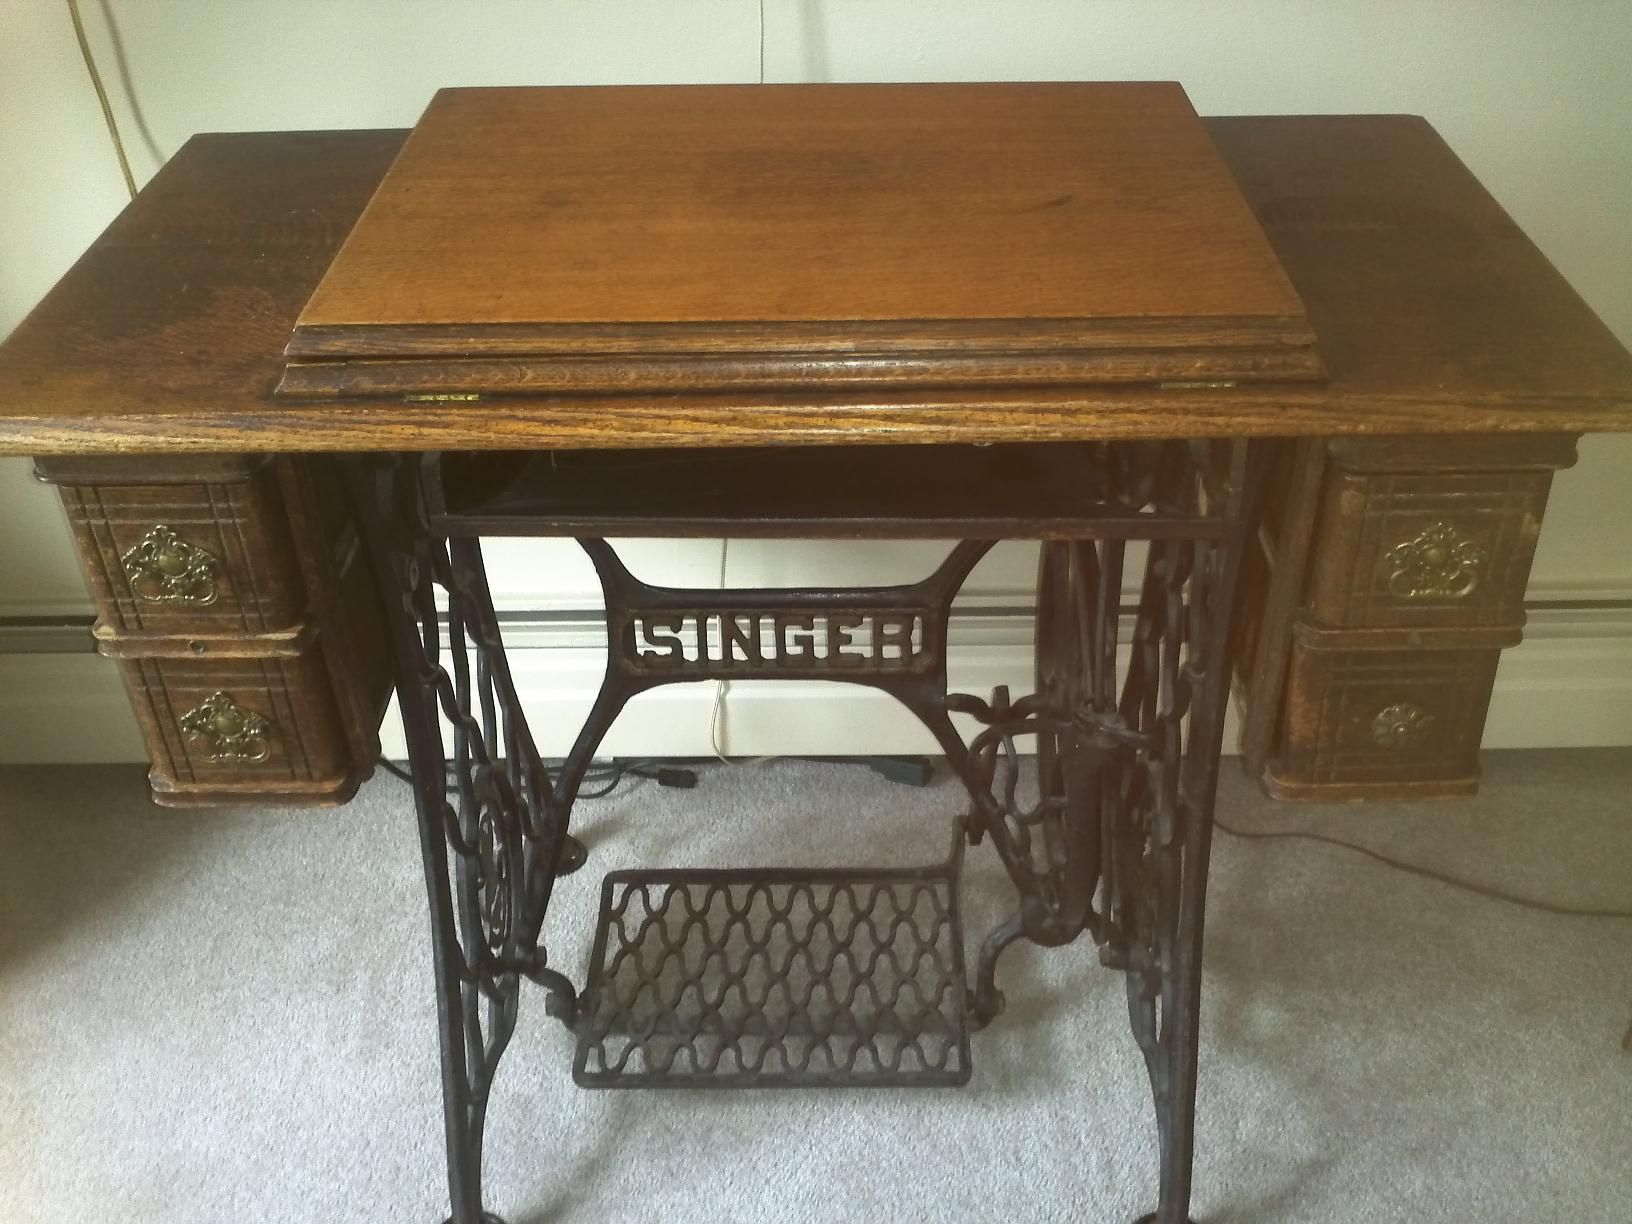 1904 Singer Model 27 4 Treadle Sewing Machine Cabinet Shown In Closed Position Concealing The Treadle Sewing Machines Vintage Sewing Machines Vintage Sewing